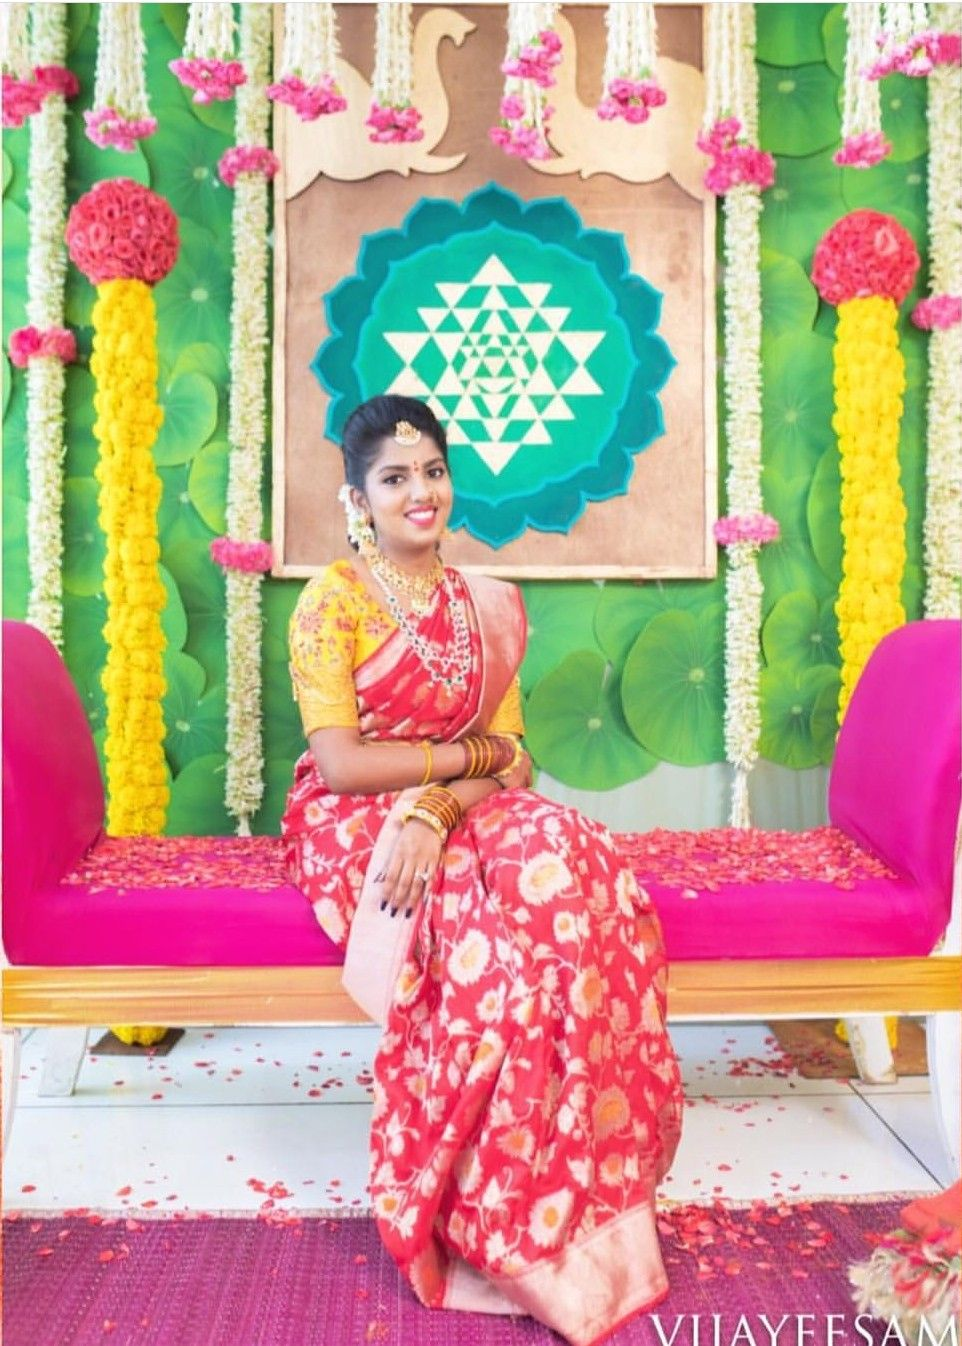 South Indian Baby Shower Decorations : south, indian, shower, decorations, Karishma, Decoration, Indian, Shower, Decorations,, Beautiful, Wedding, Backdrop, Decorations